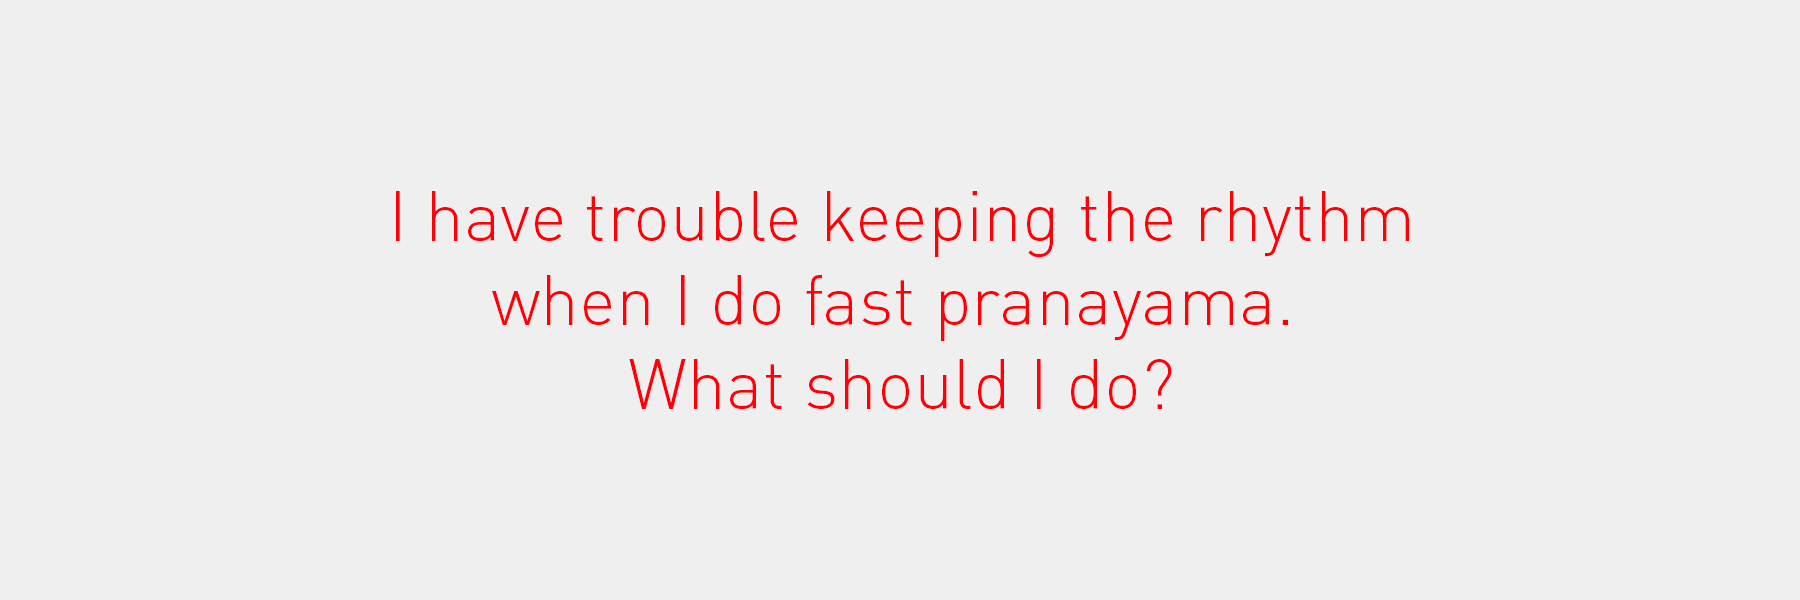 I have trouble keeping the rhythm when I do fast pranayama. What should I do?